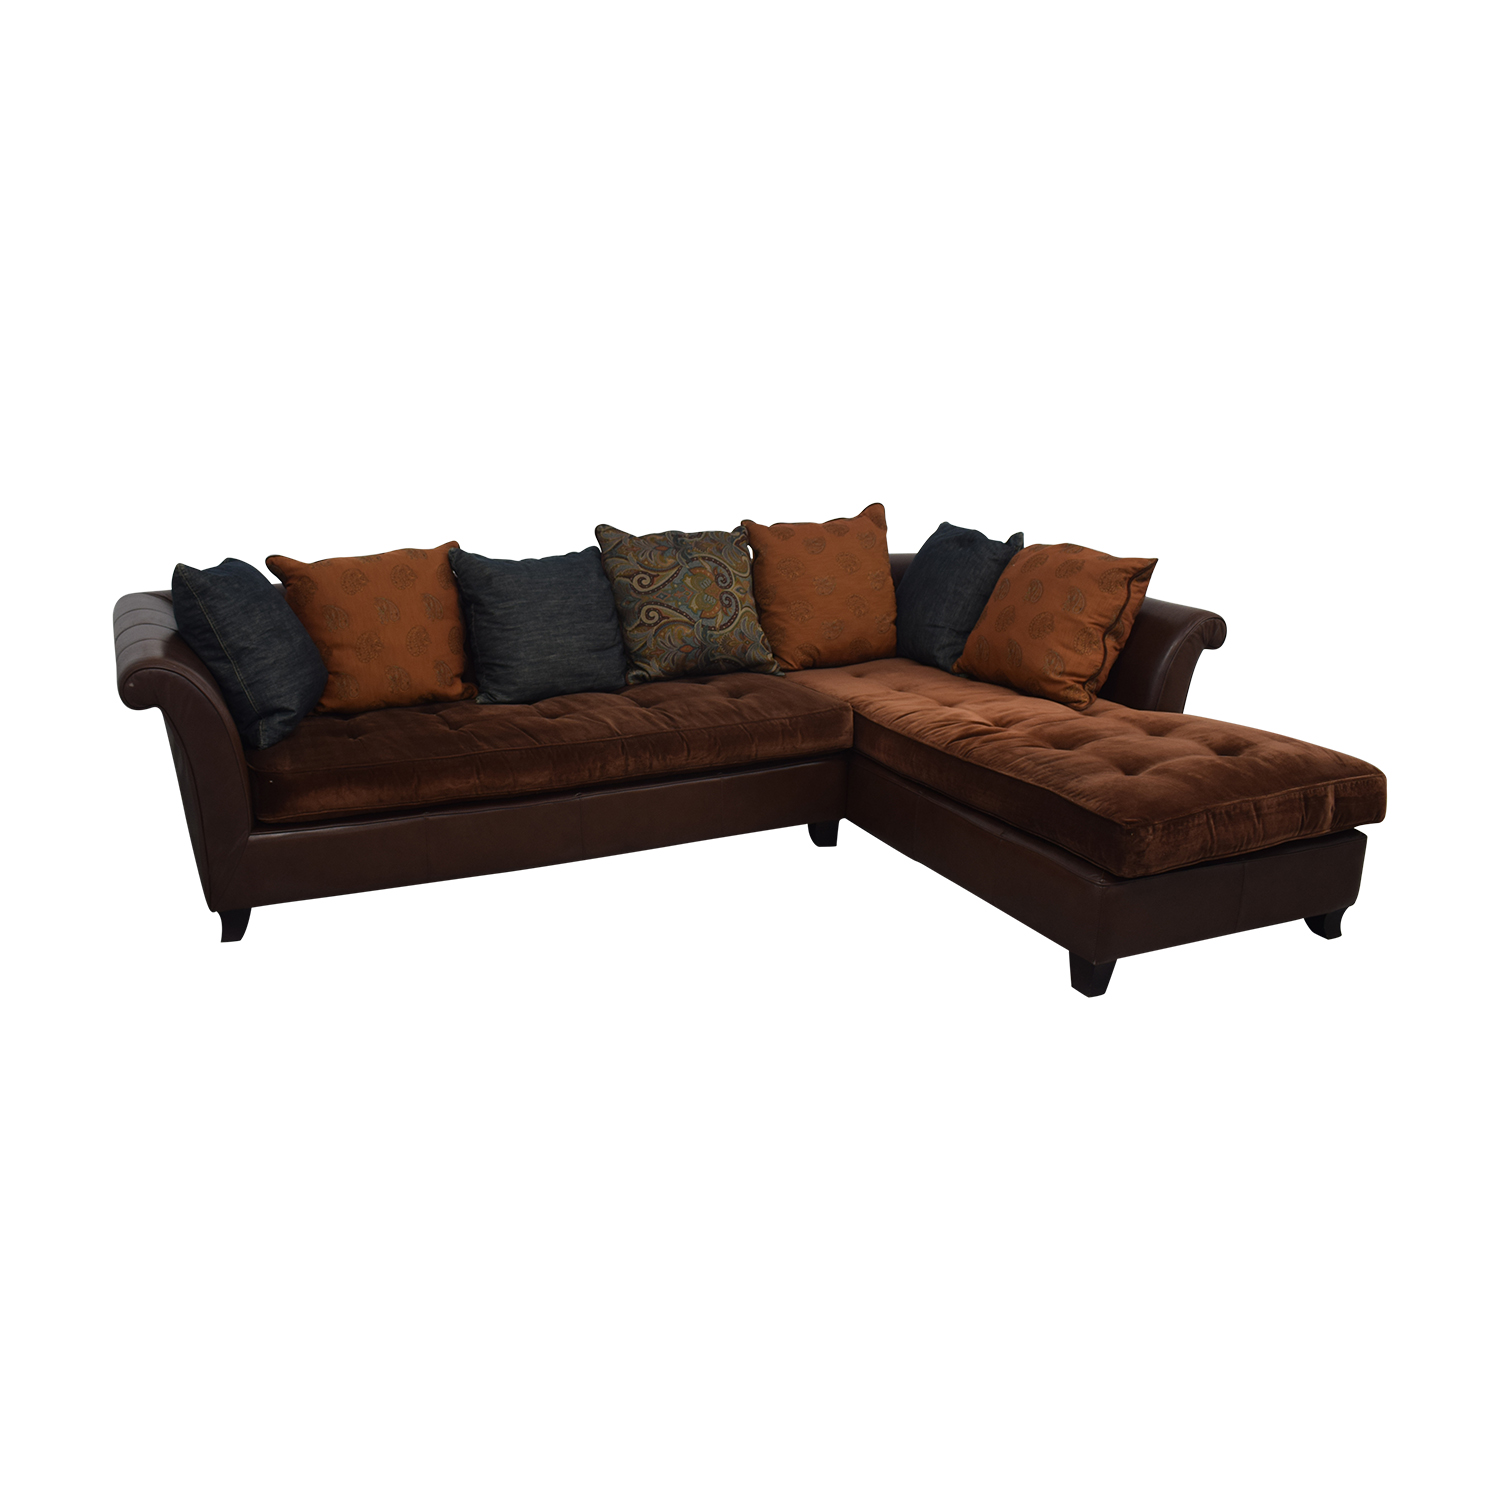 buy Brown Tufted L-Shaped Sectional